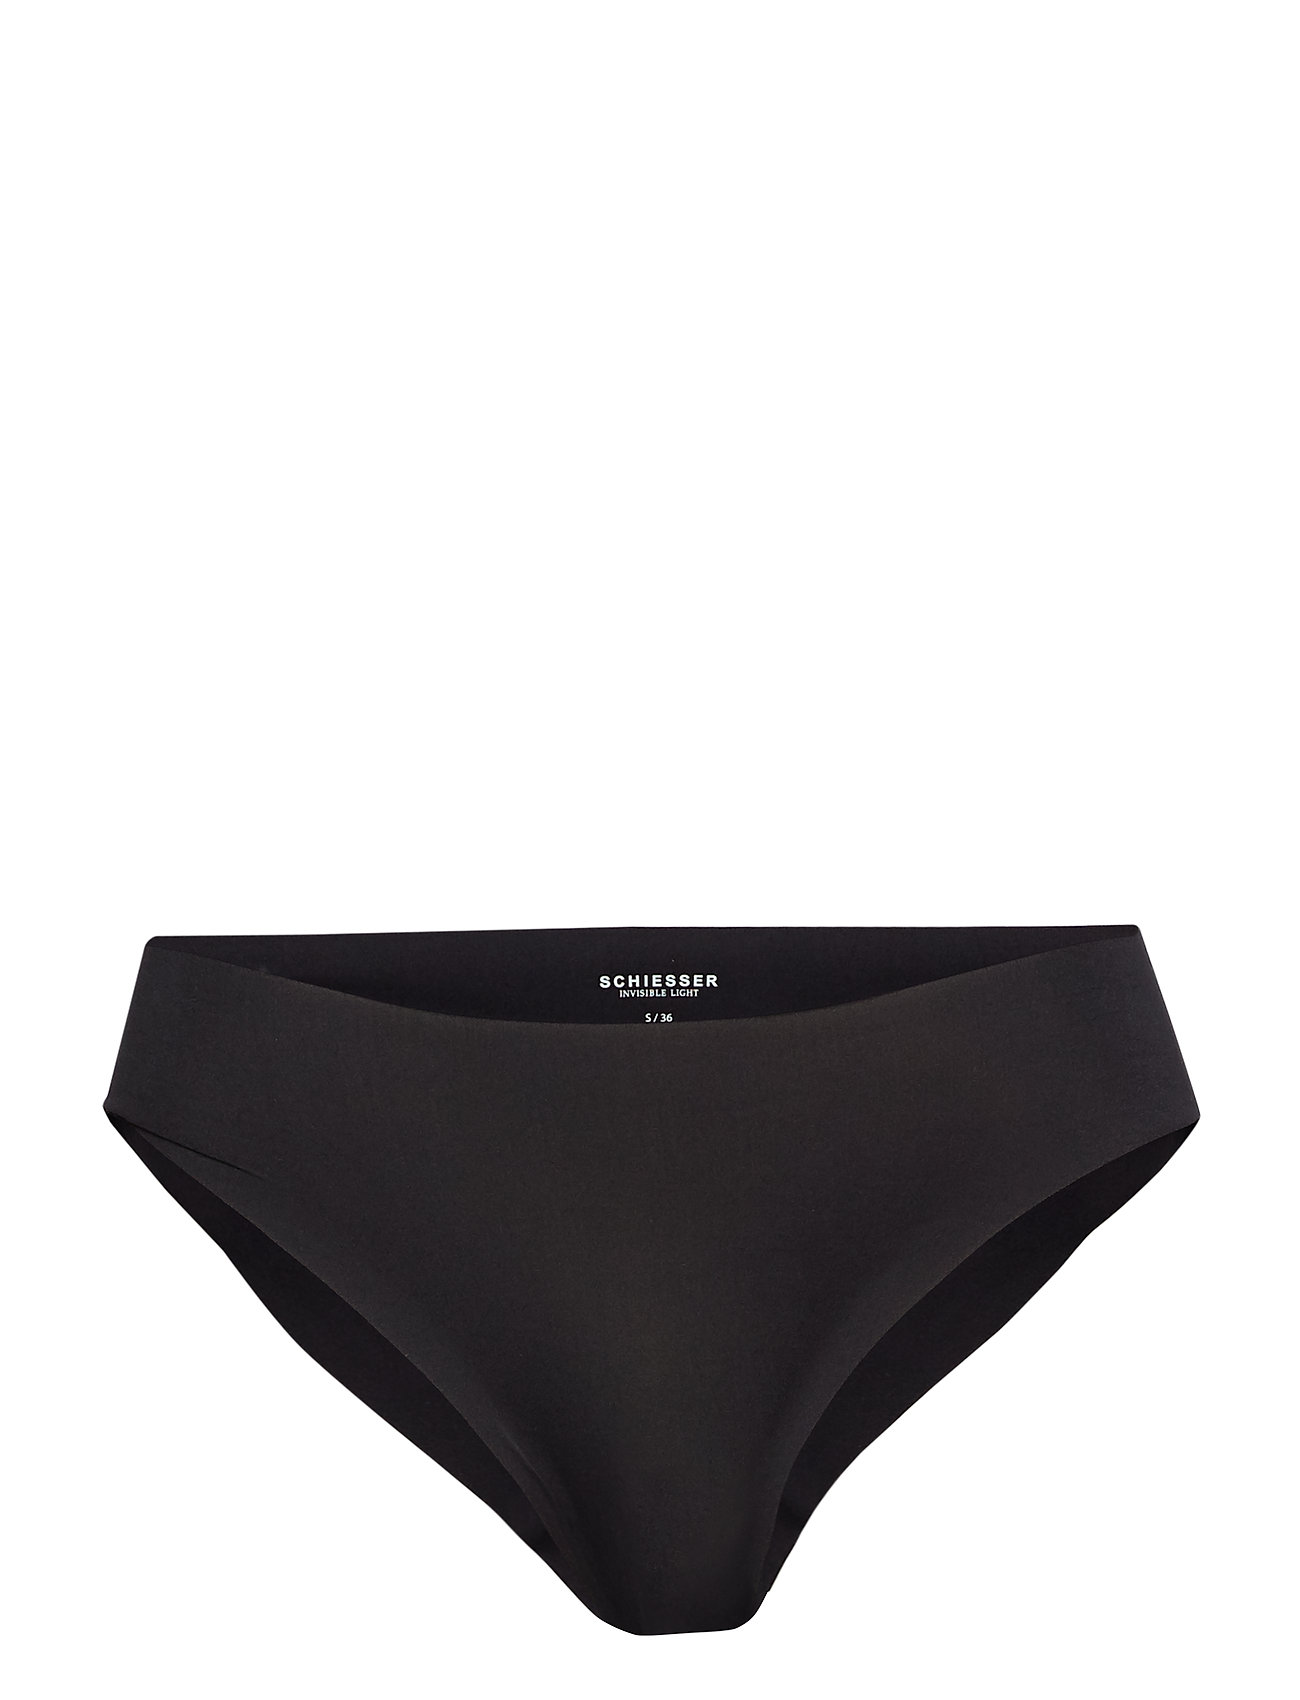 Schiesser Brief - BLACK